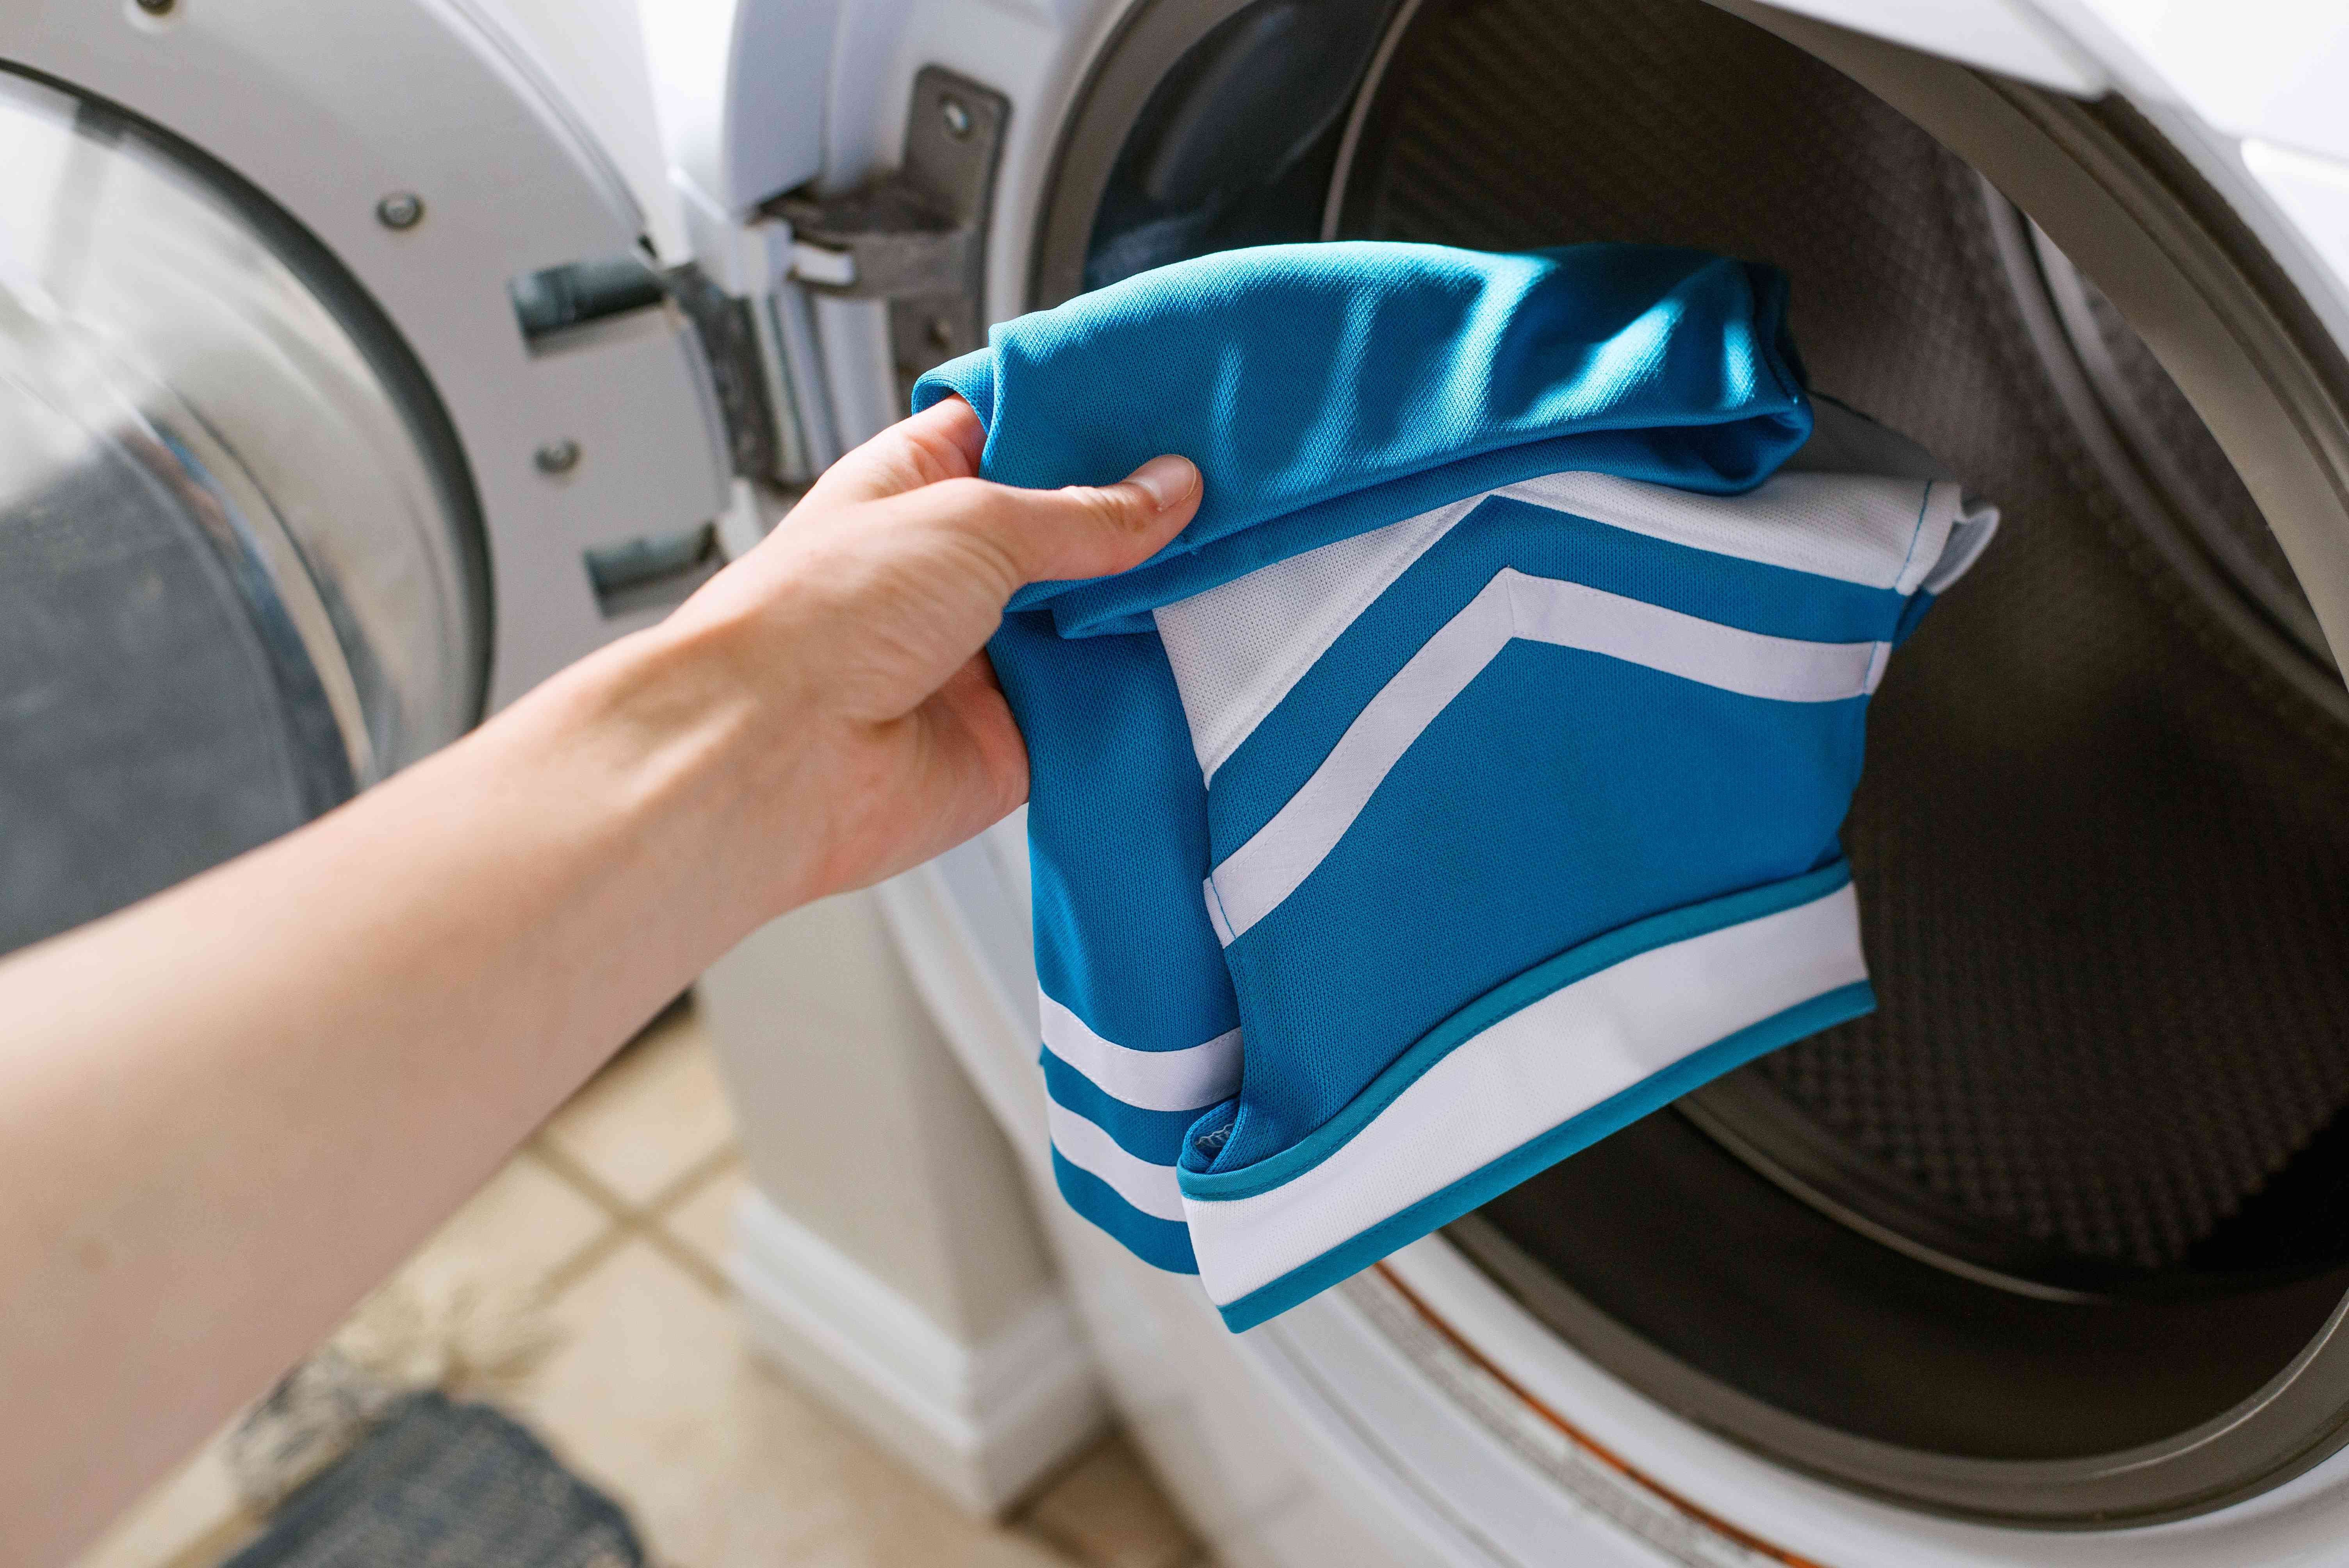 Blue and white cheerleading uniform top placed in washing machine alone